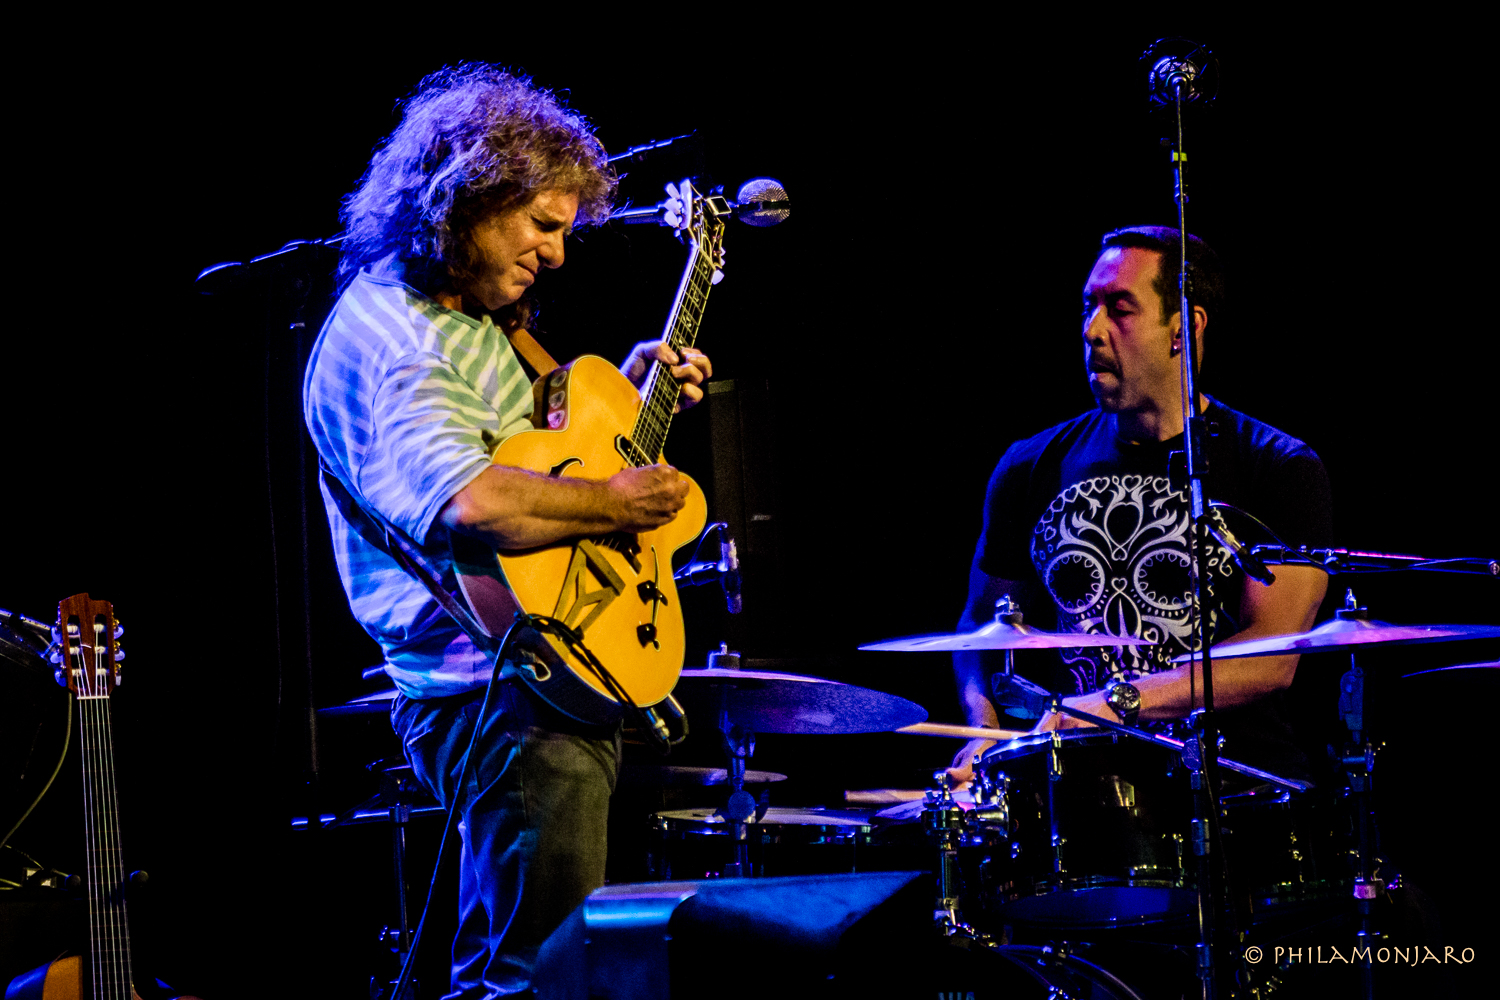 PHOTOS / SETLIST / RECAP | Pat Metheny @ Ravinia 6/14/17